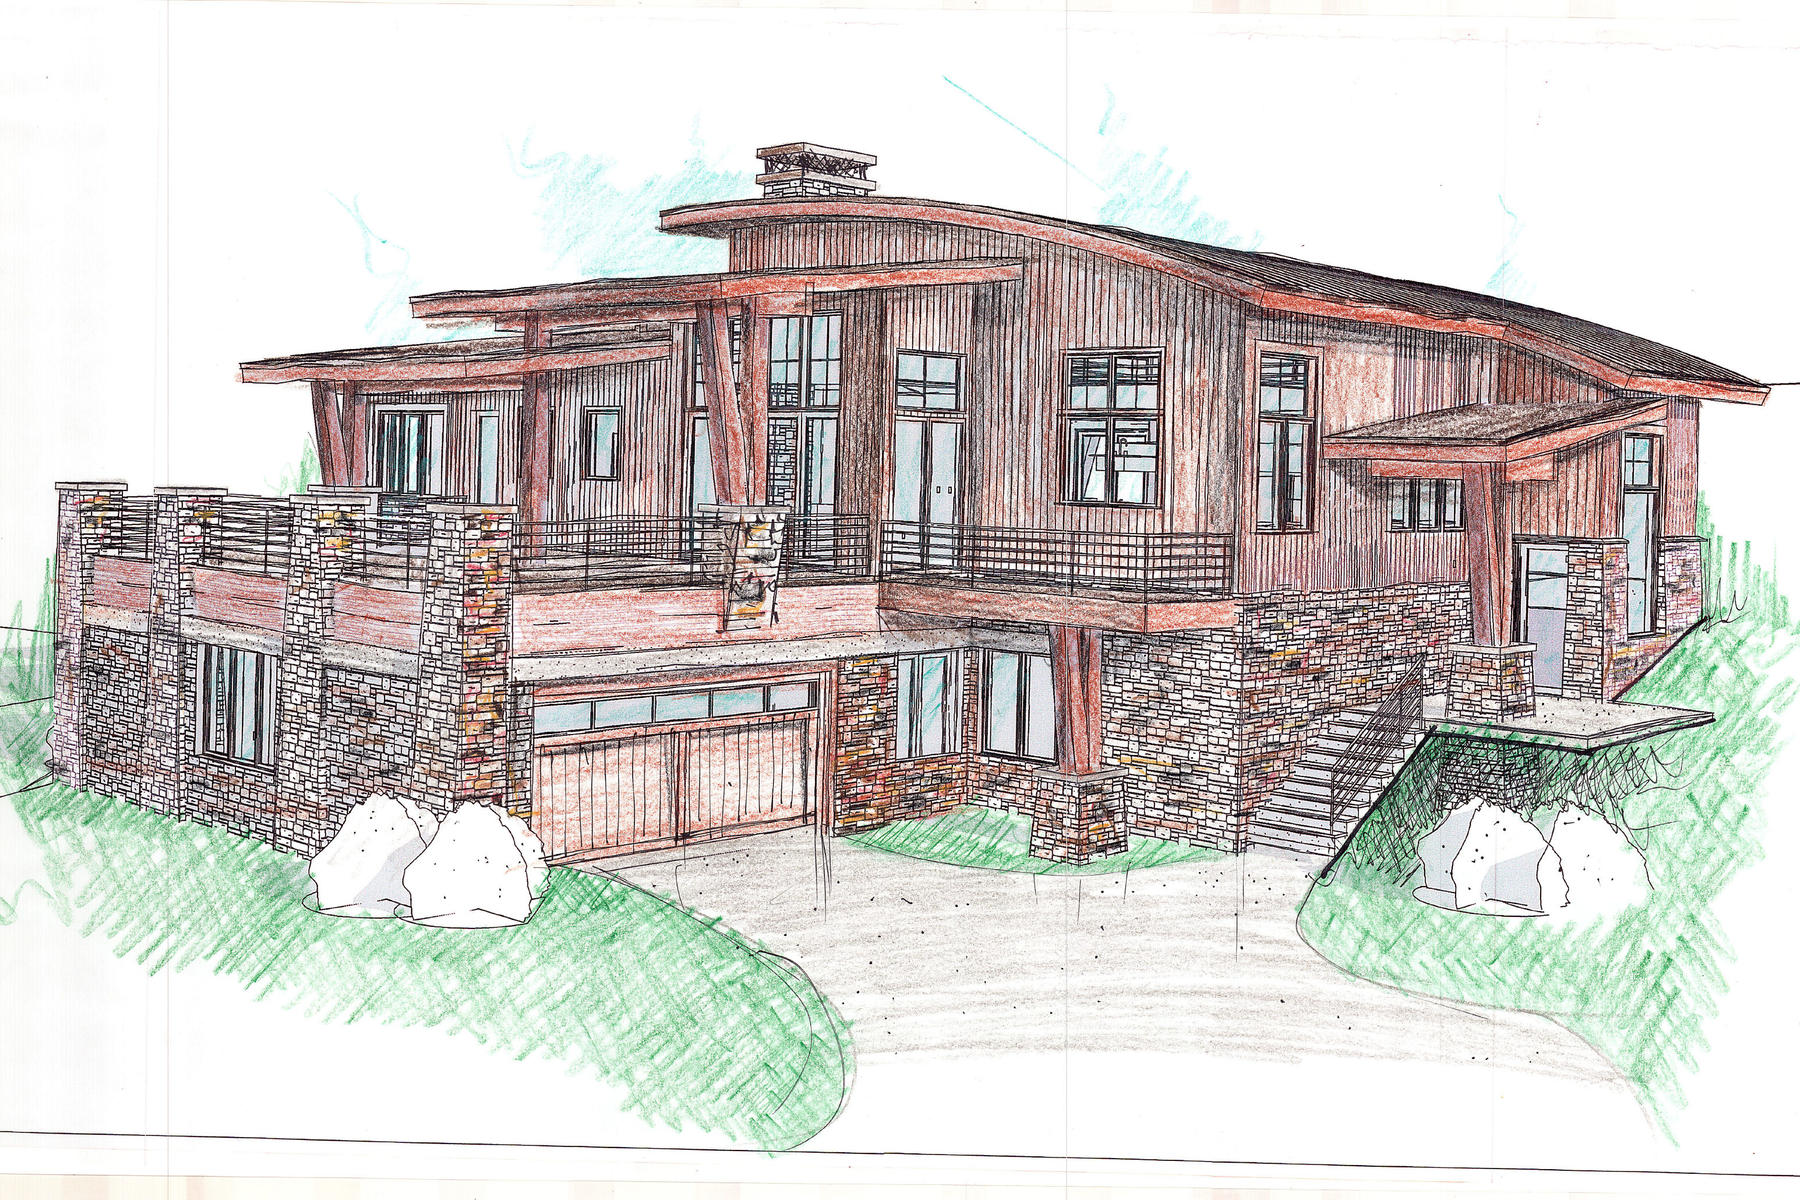 Single Family Home for Sale at Stunning New Construction With Views 3516 E Westview Trl, Park City, Utah, 84098 United States